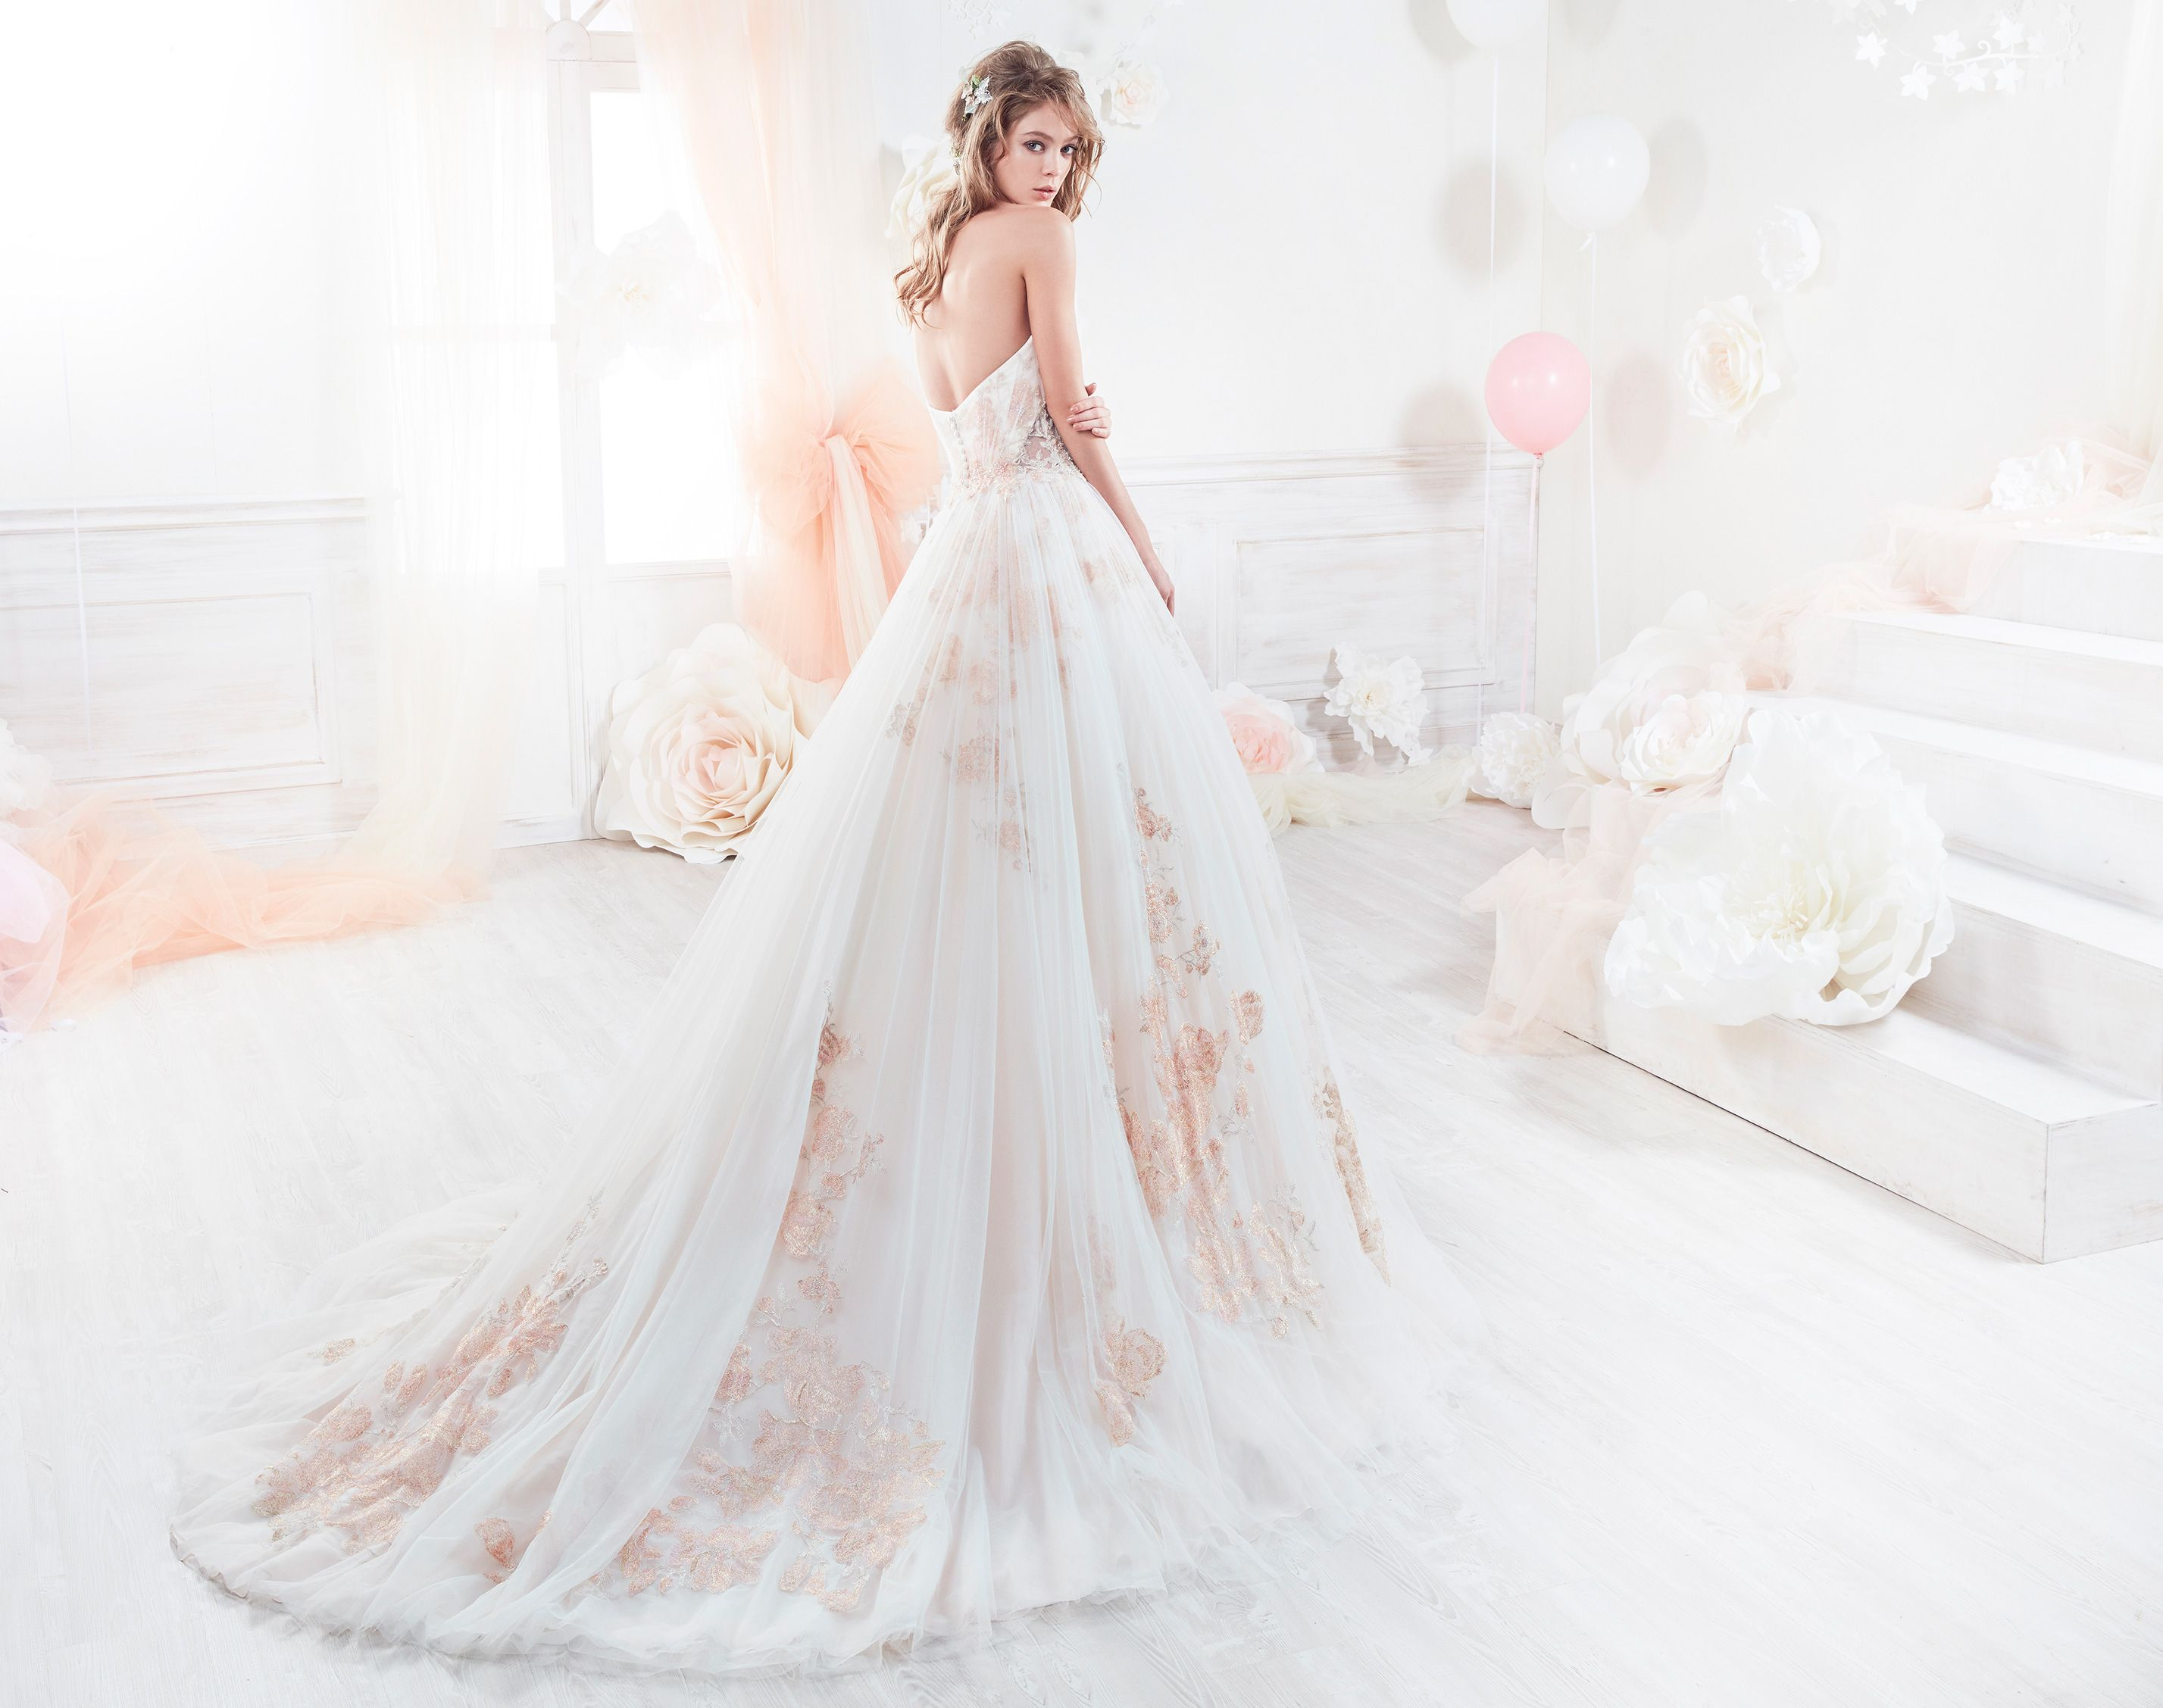 Nicole Beautiful Princess Gown In Tulle, Enriched With